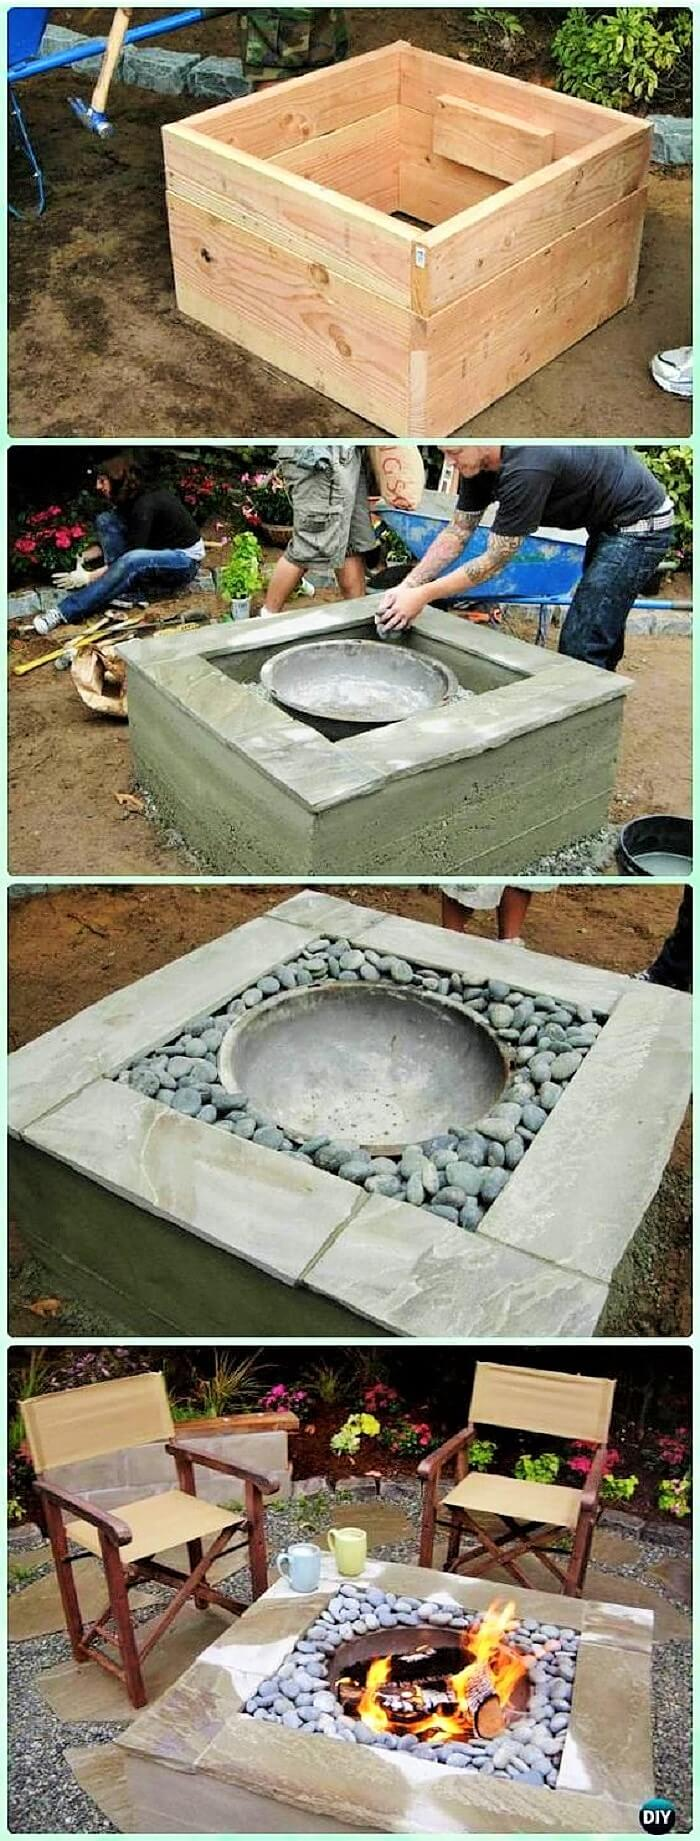 DIY-Cozy-Fire-Pit-Project